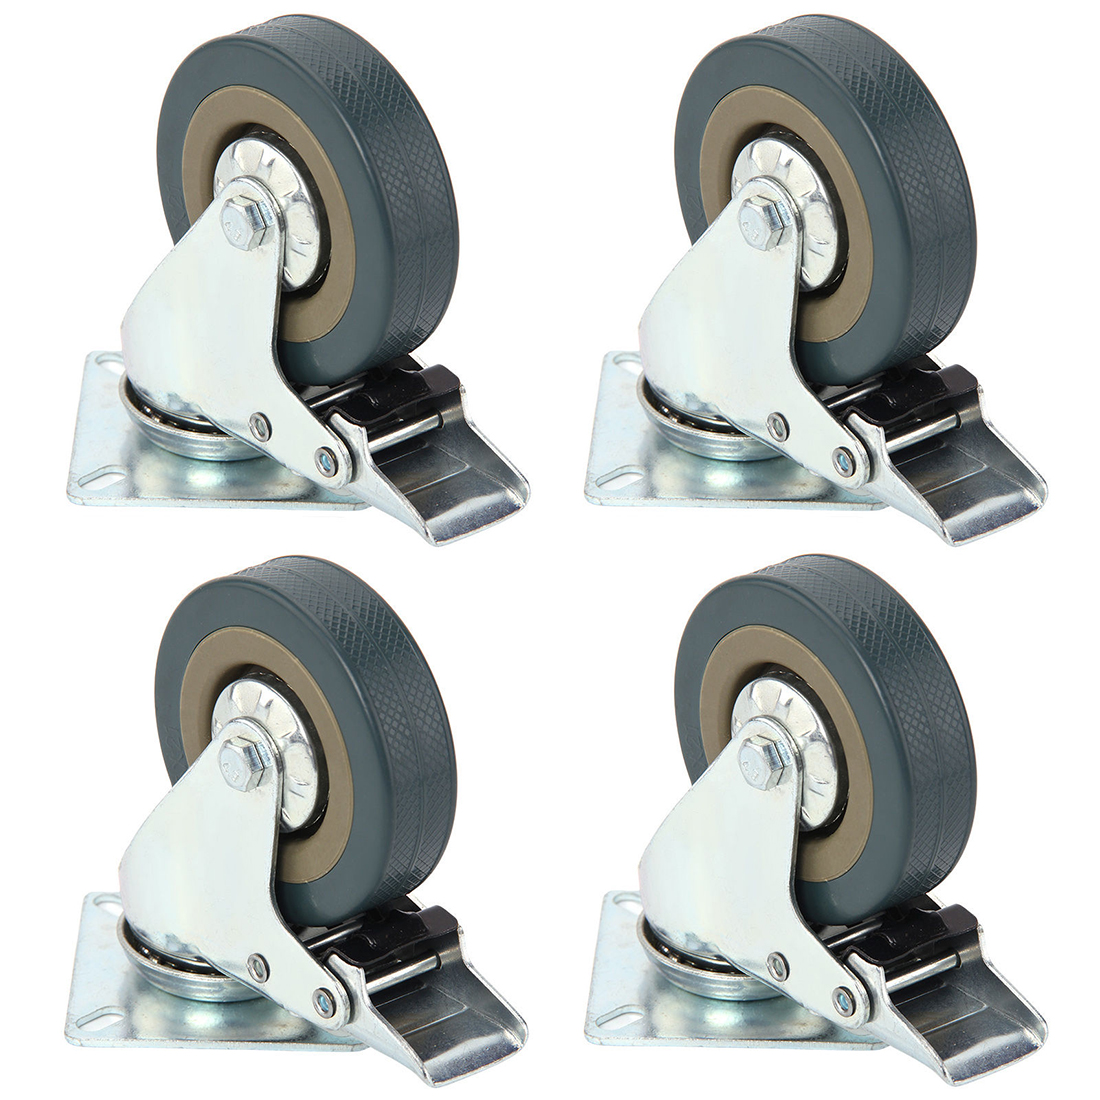 Set of Heavy Duty 125x27mm Rubber Swivel Castor Wheels Trolley Caster Brake 100KGModel:4 with brake ys 138no nc ansi standard heavy duty electric strike size 124 x 32 x 33 mm